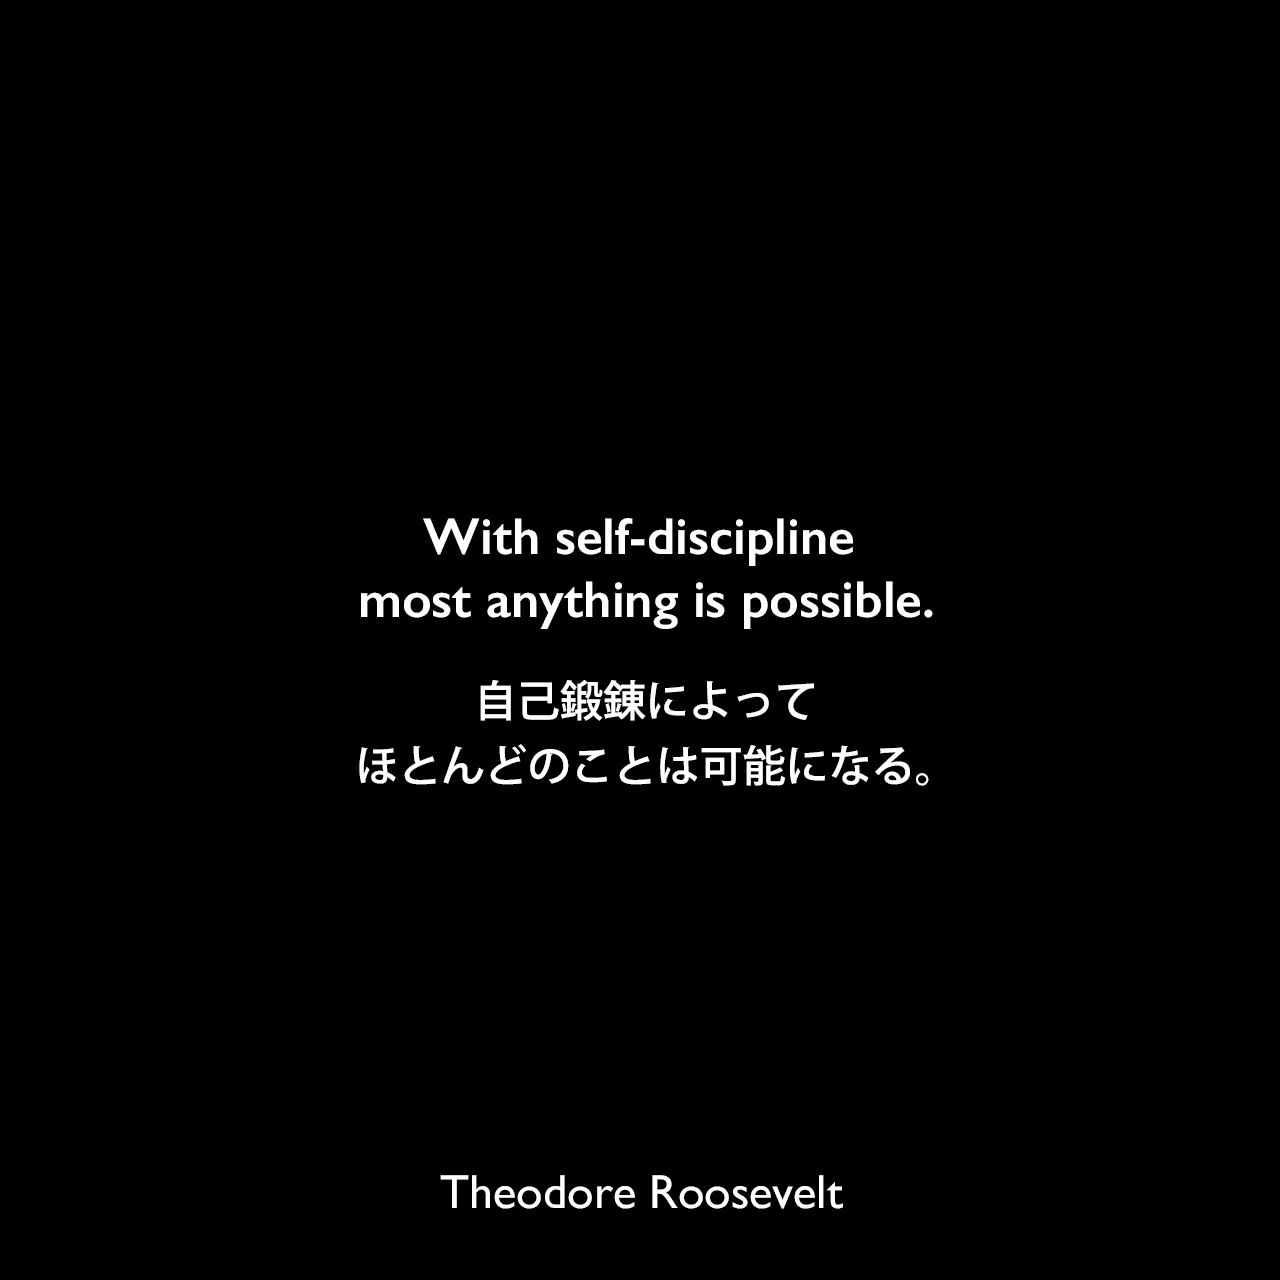 With self-discipline most anything is possible.自己鍛錬によって、ほとんどのことは可能になる。Theodore Roosevelt